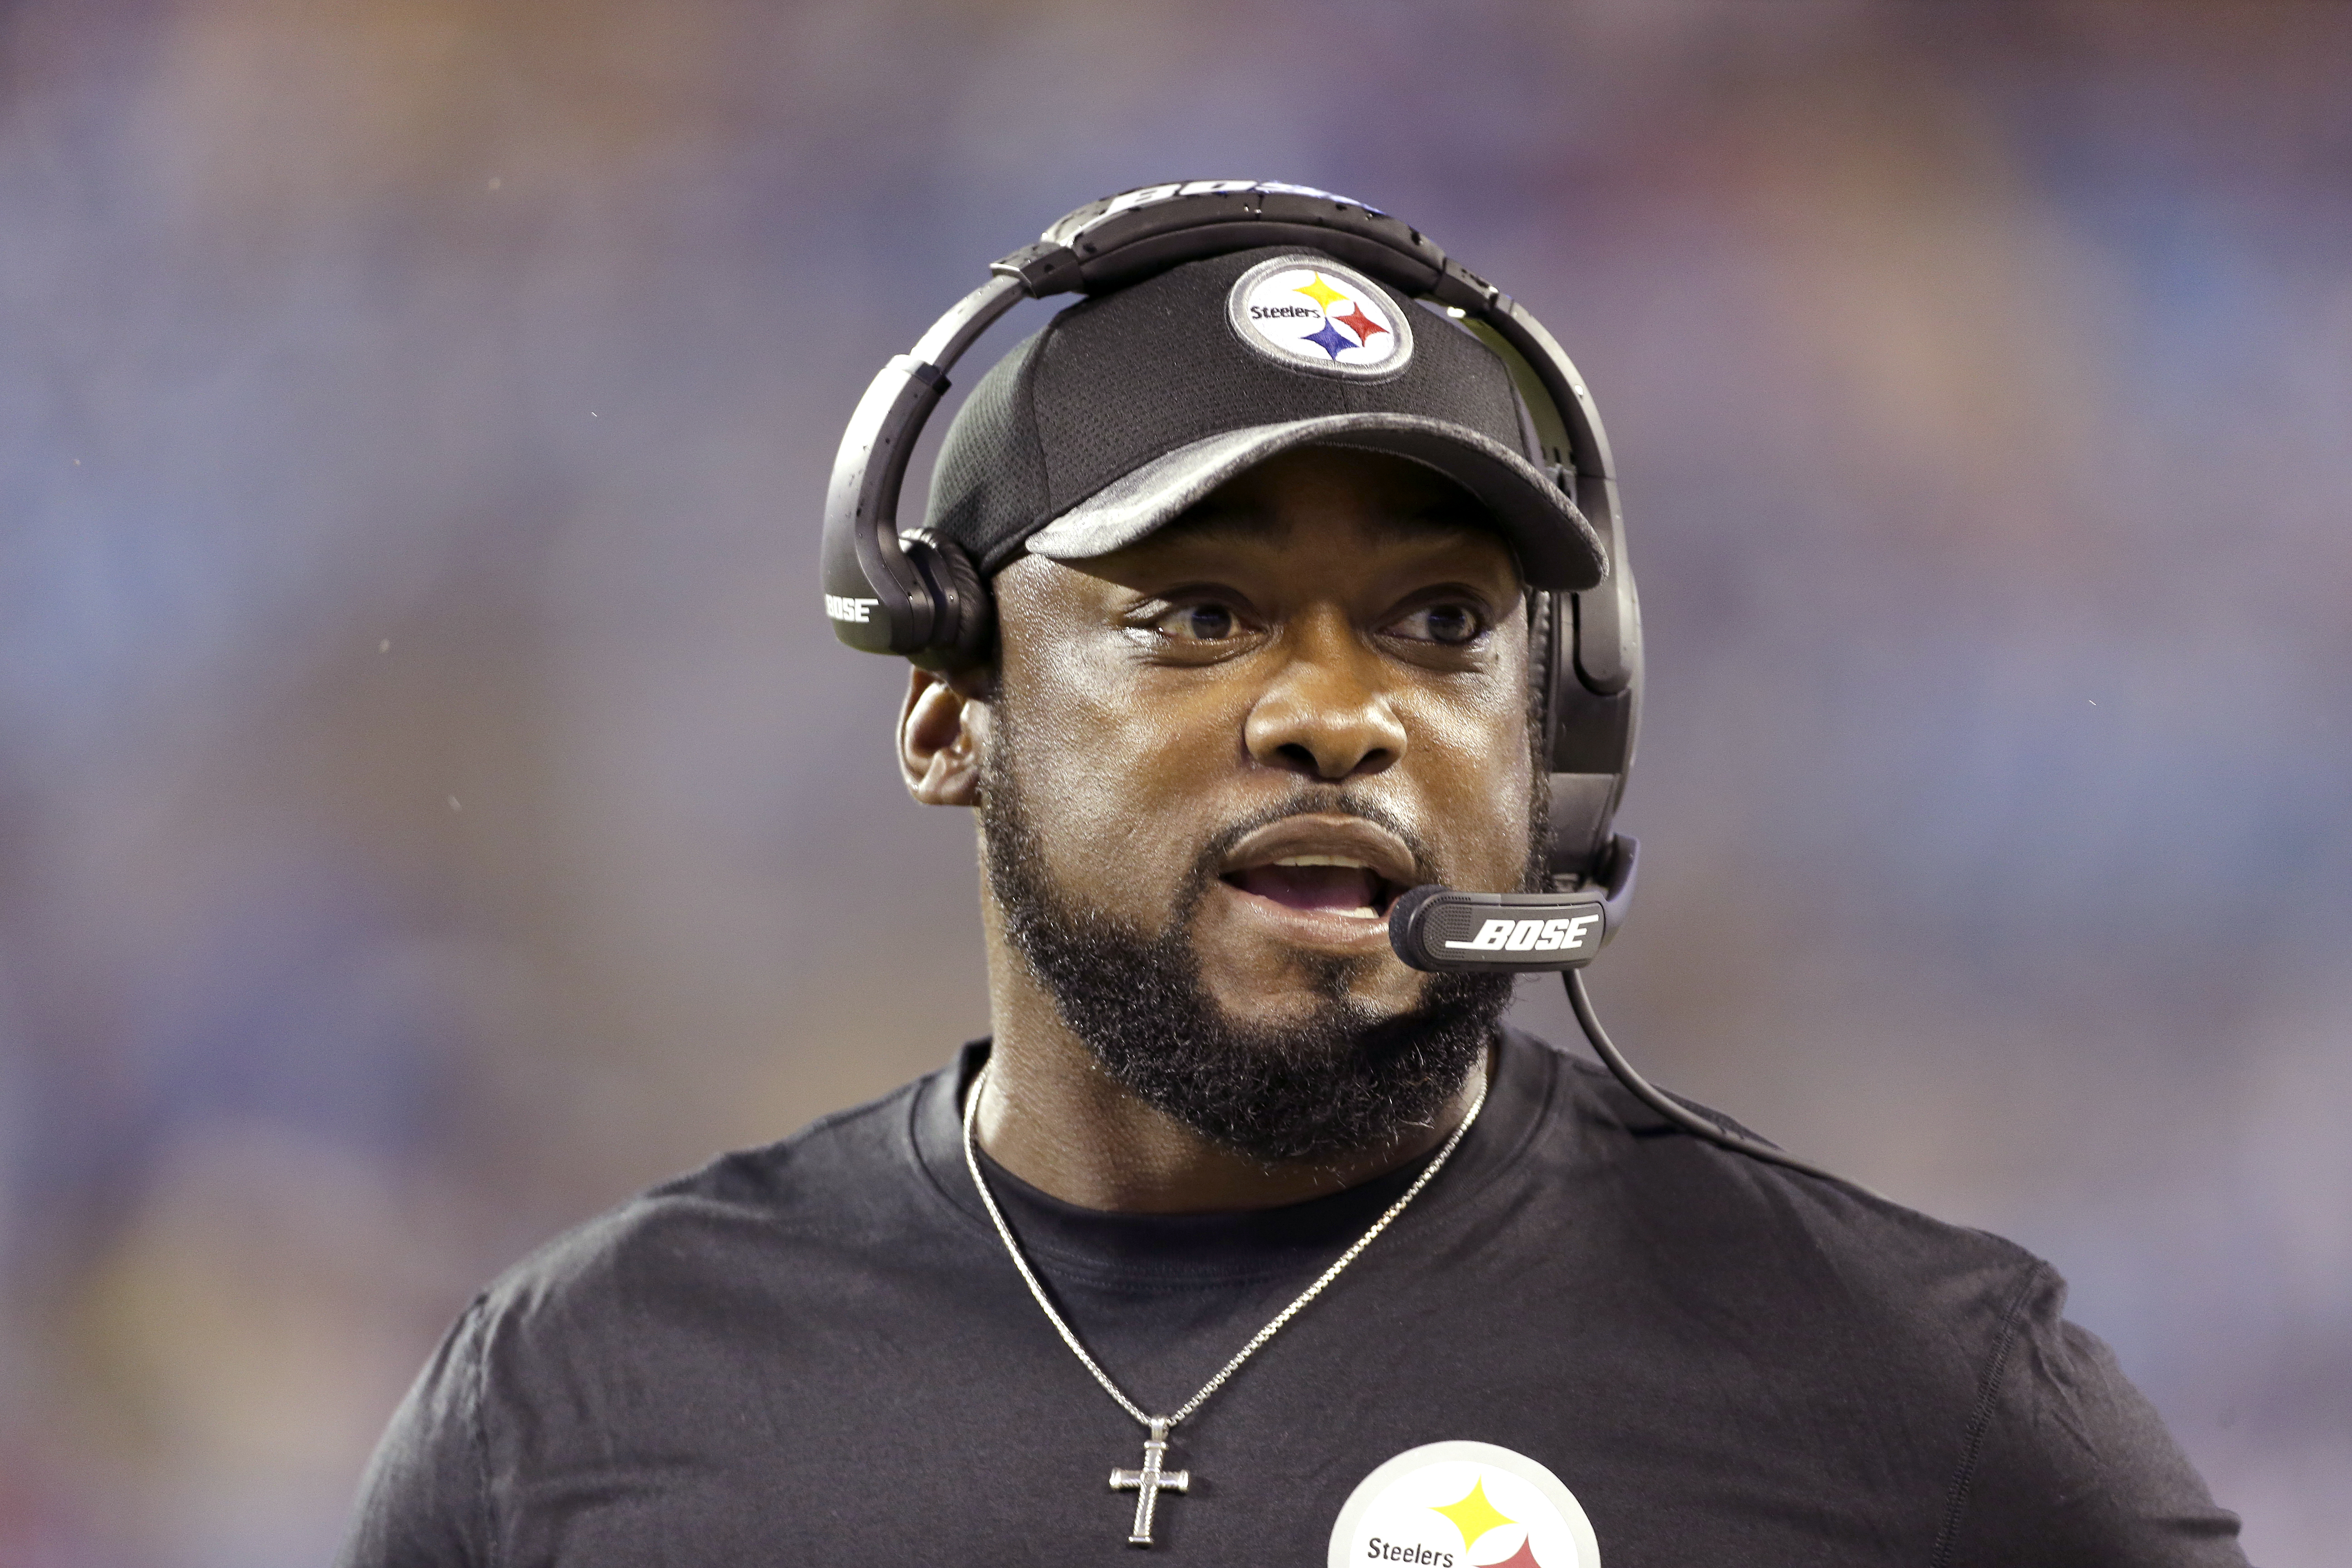 FILE - In this Thursday, Sept. 1, 2016 file photo, Pittsburgh Steelers' head coach Mike Tomlin watches from the sidelines during the first half of an NFL preseason football game against the Carolina Panthers in Charlotte, N.C. Minutes after becoming just